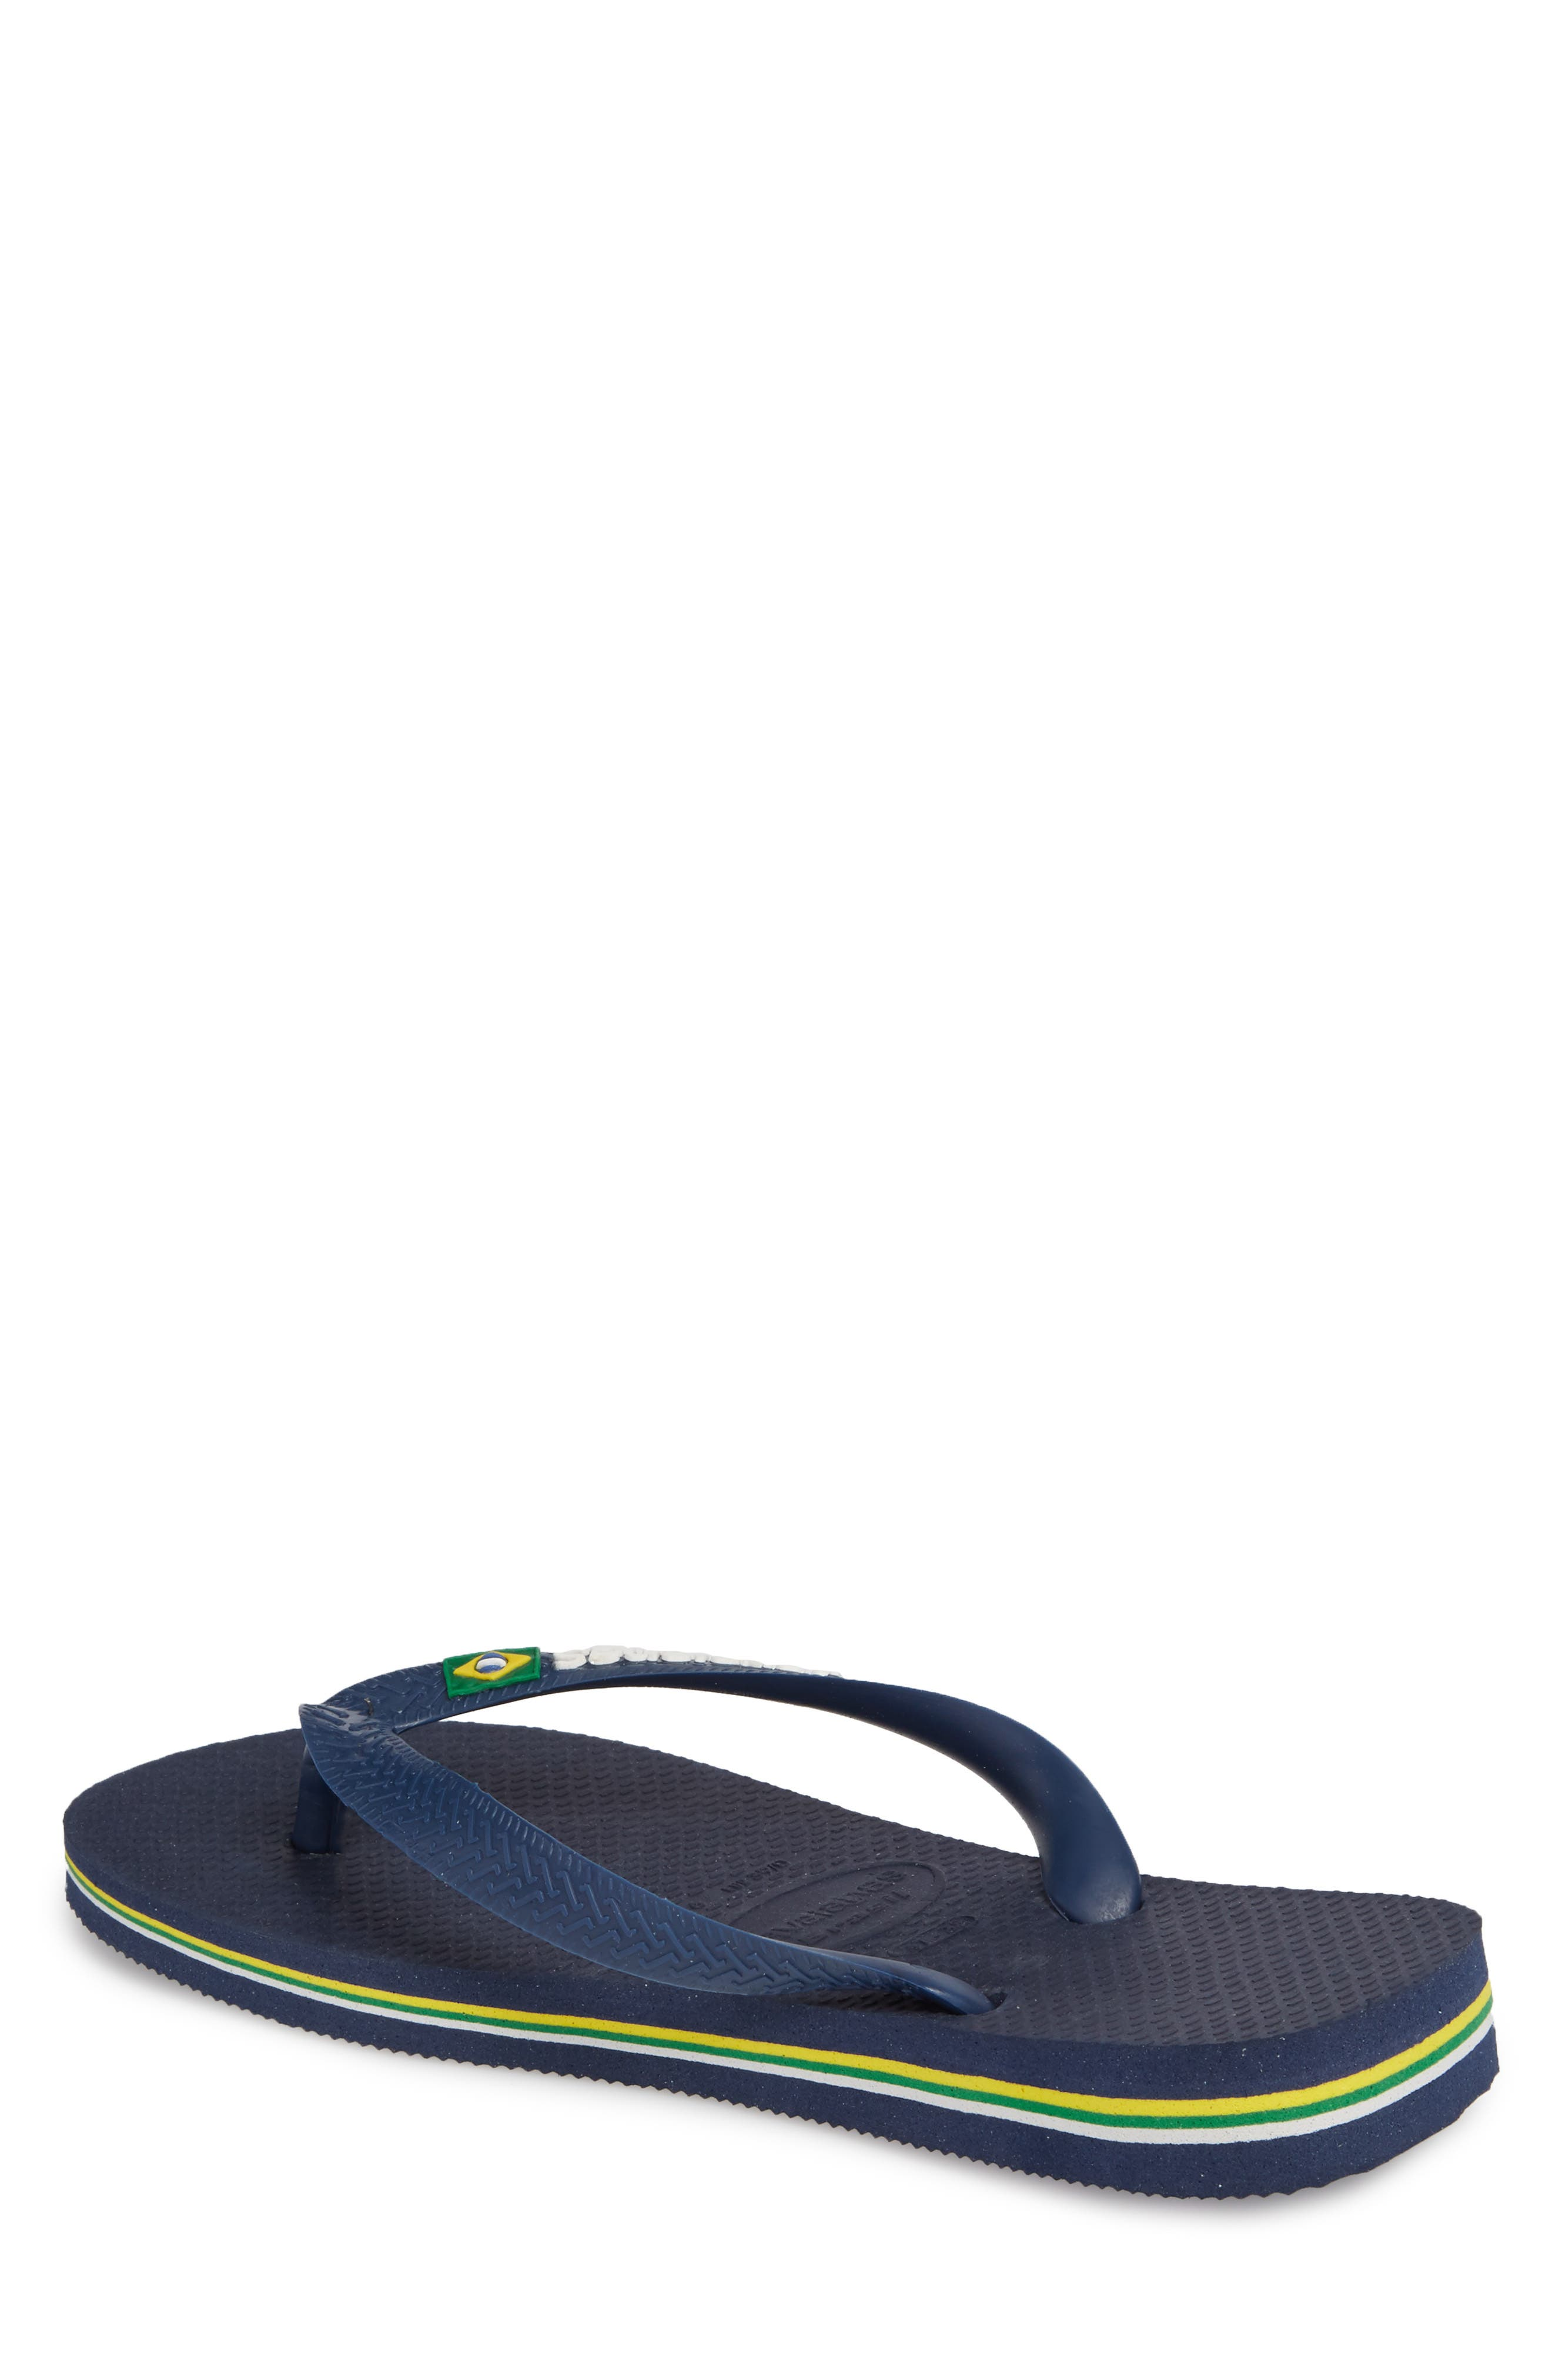 Alternate Image 2  - Havaianas Brazil Flip Flop (Men)